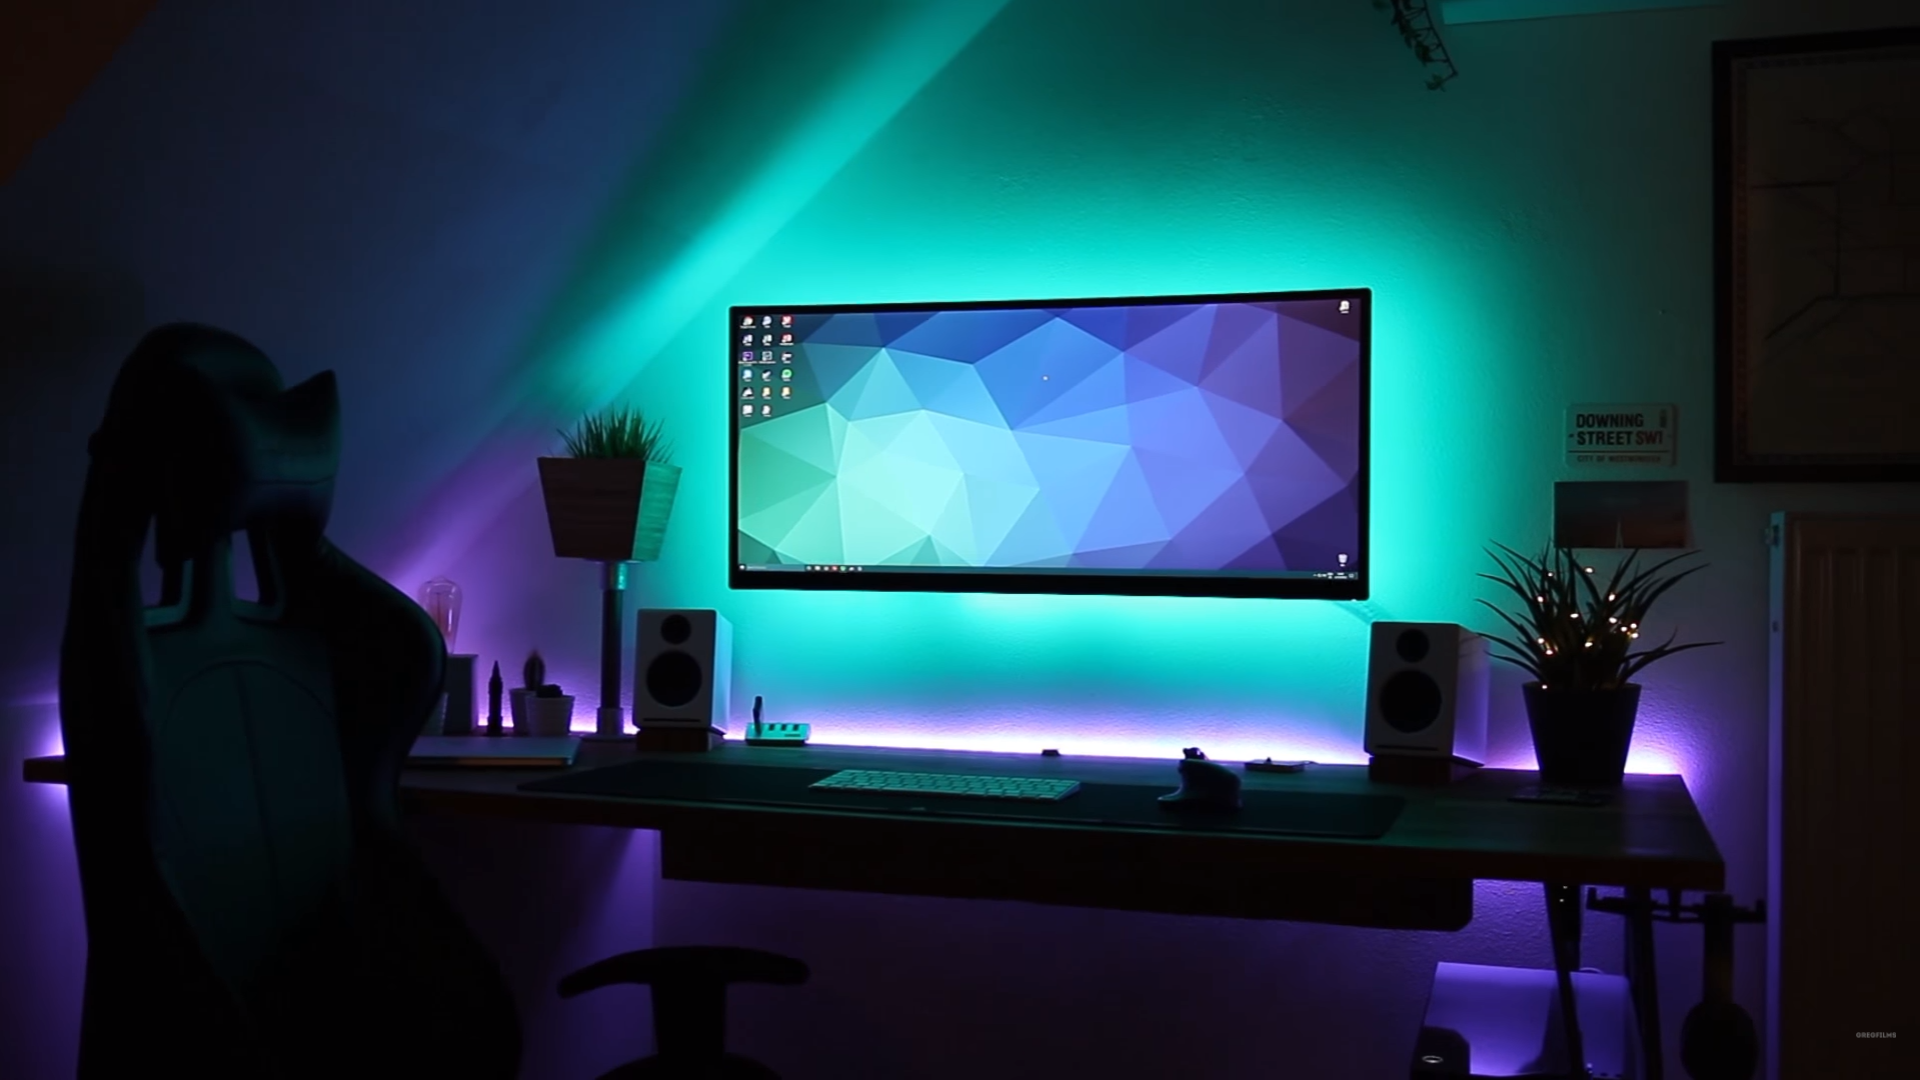 Pin by Yousef AlSafi on Tech Gaming room setup, Video